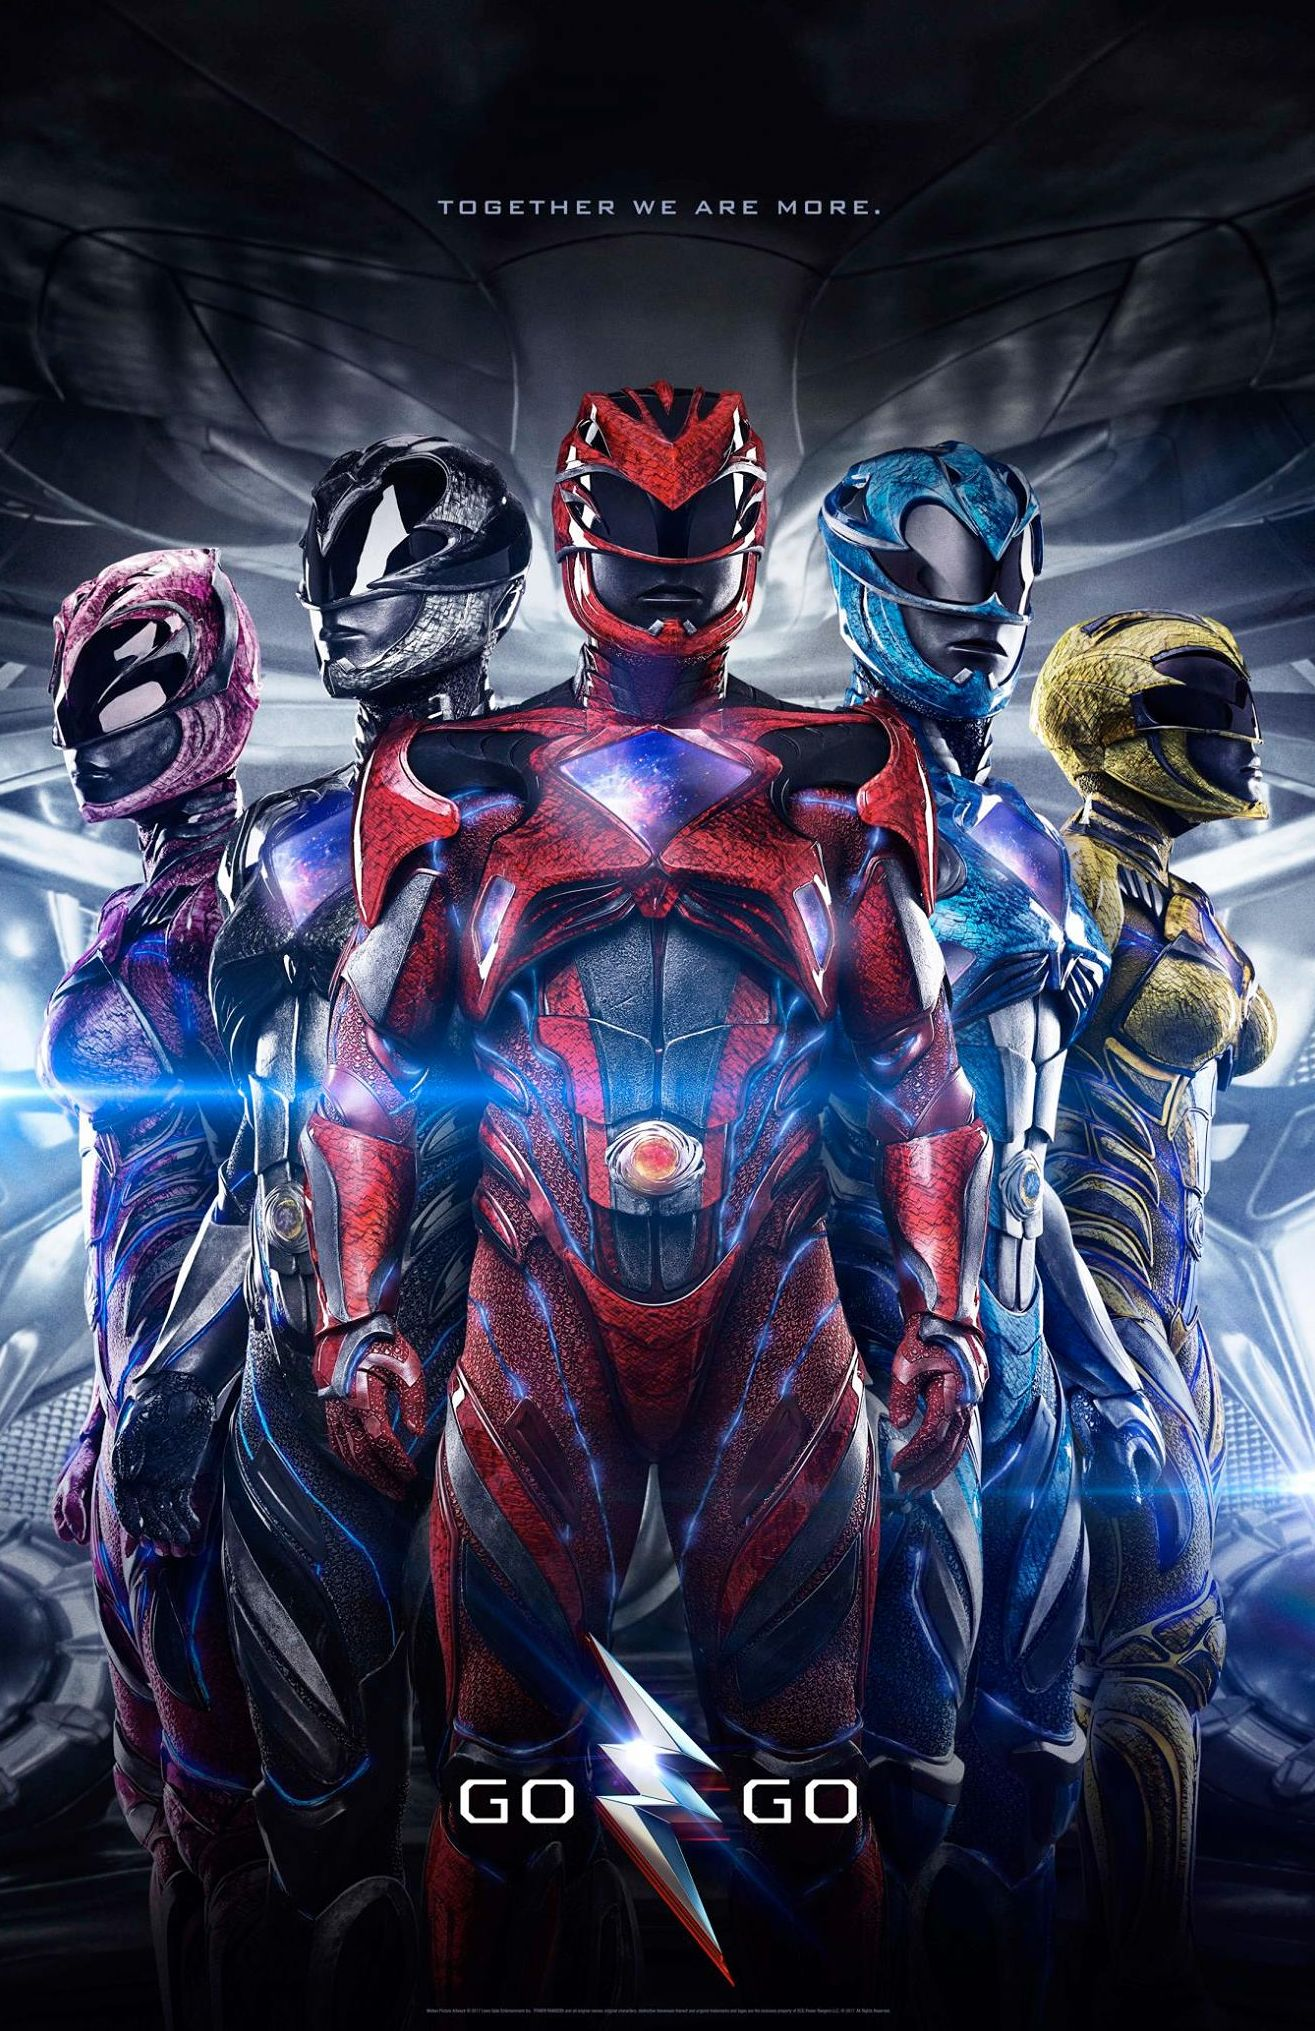 New poster lands for 'Power Rangers'